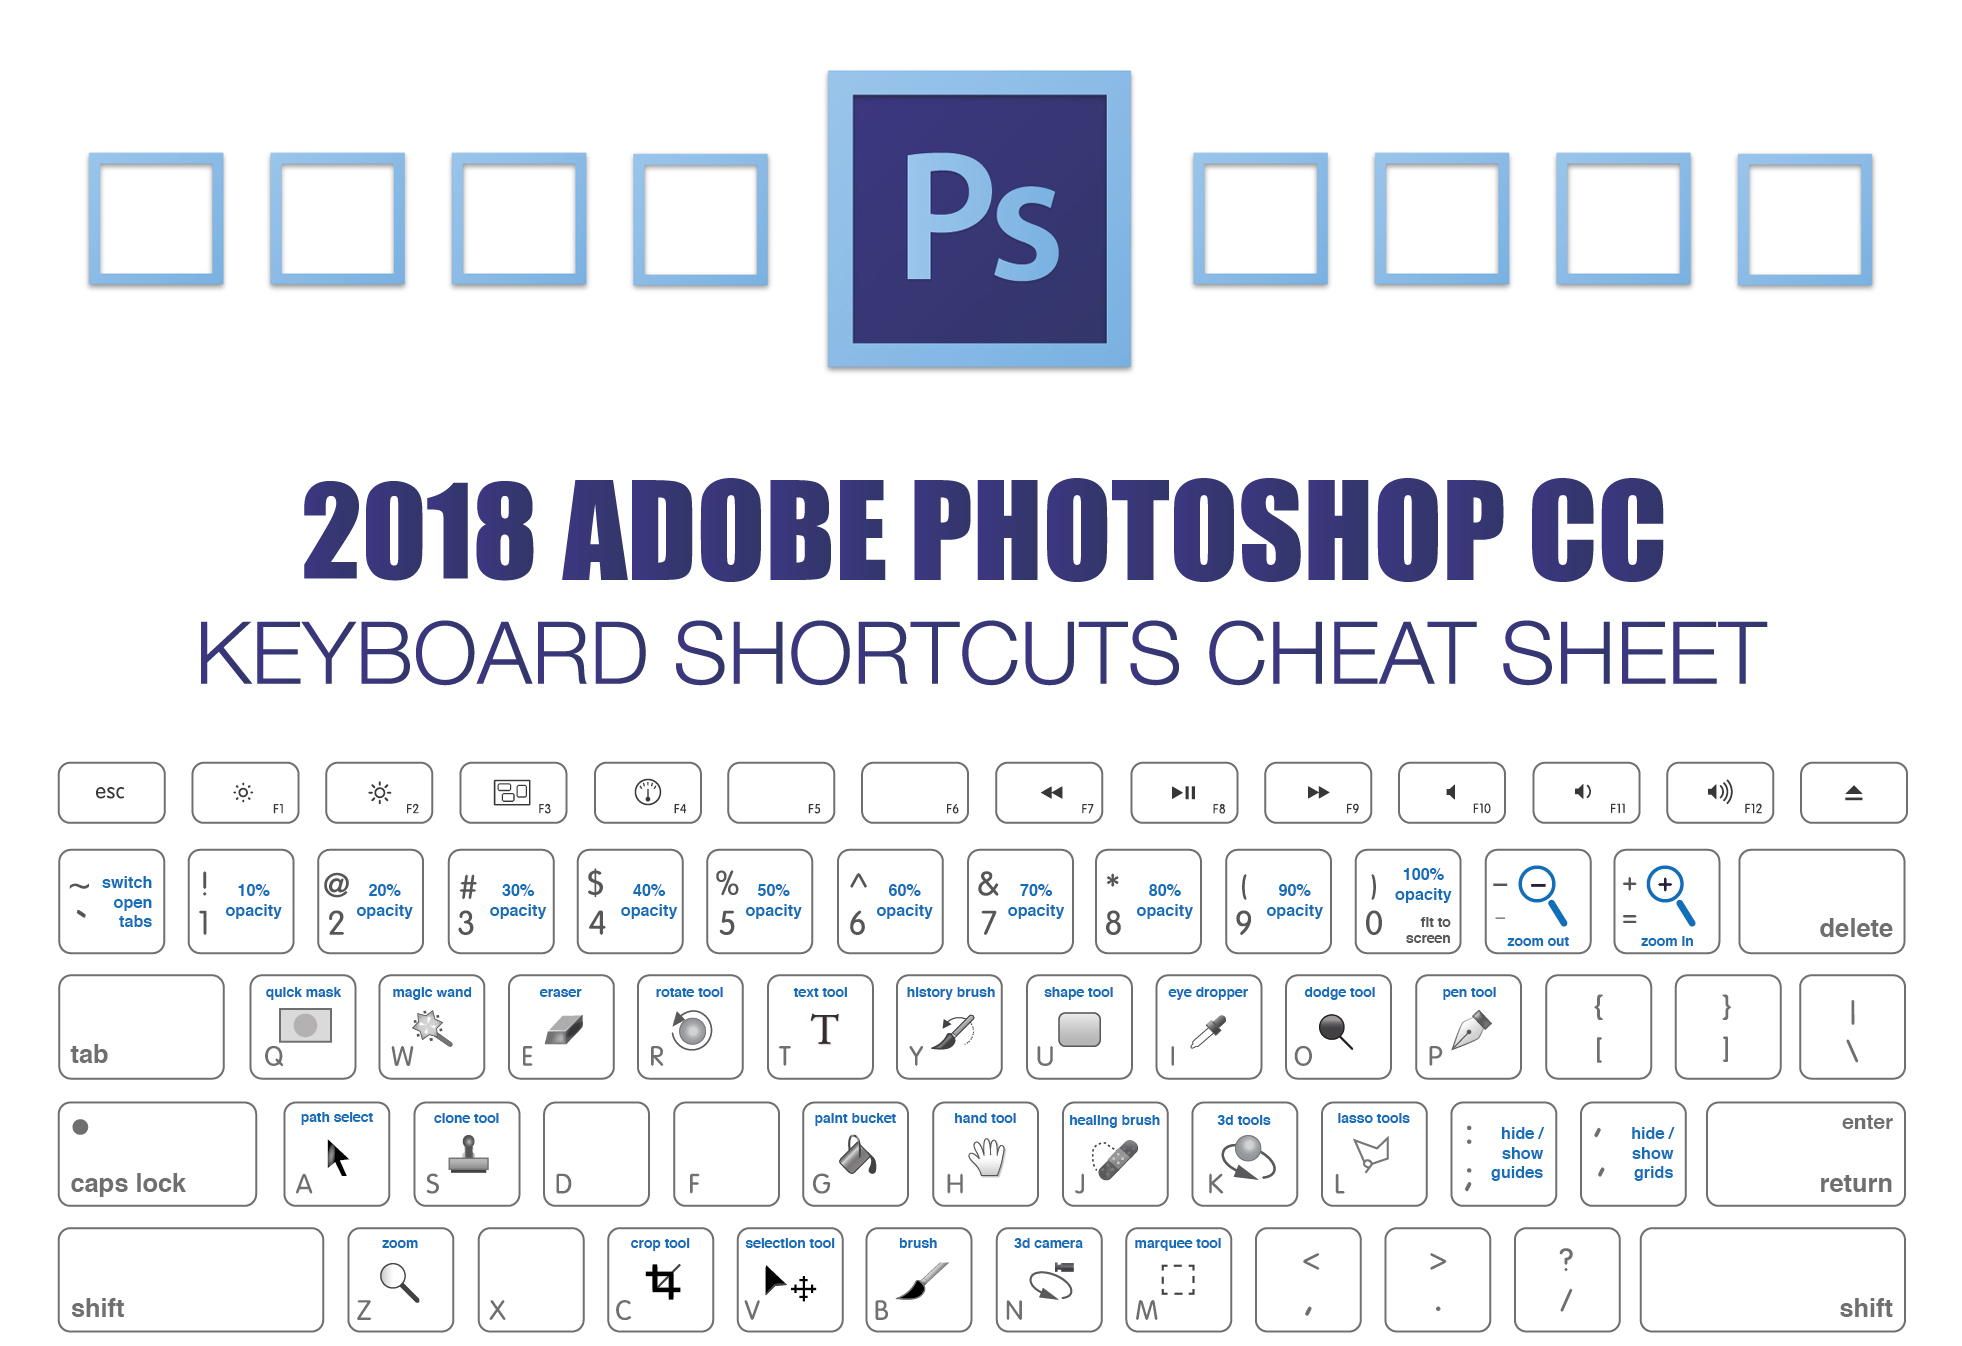 Adobe Photoshop Keyboard Shortcuts Cheat Sheet